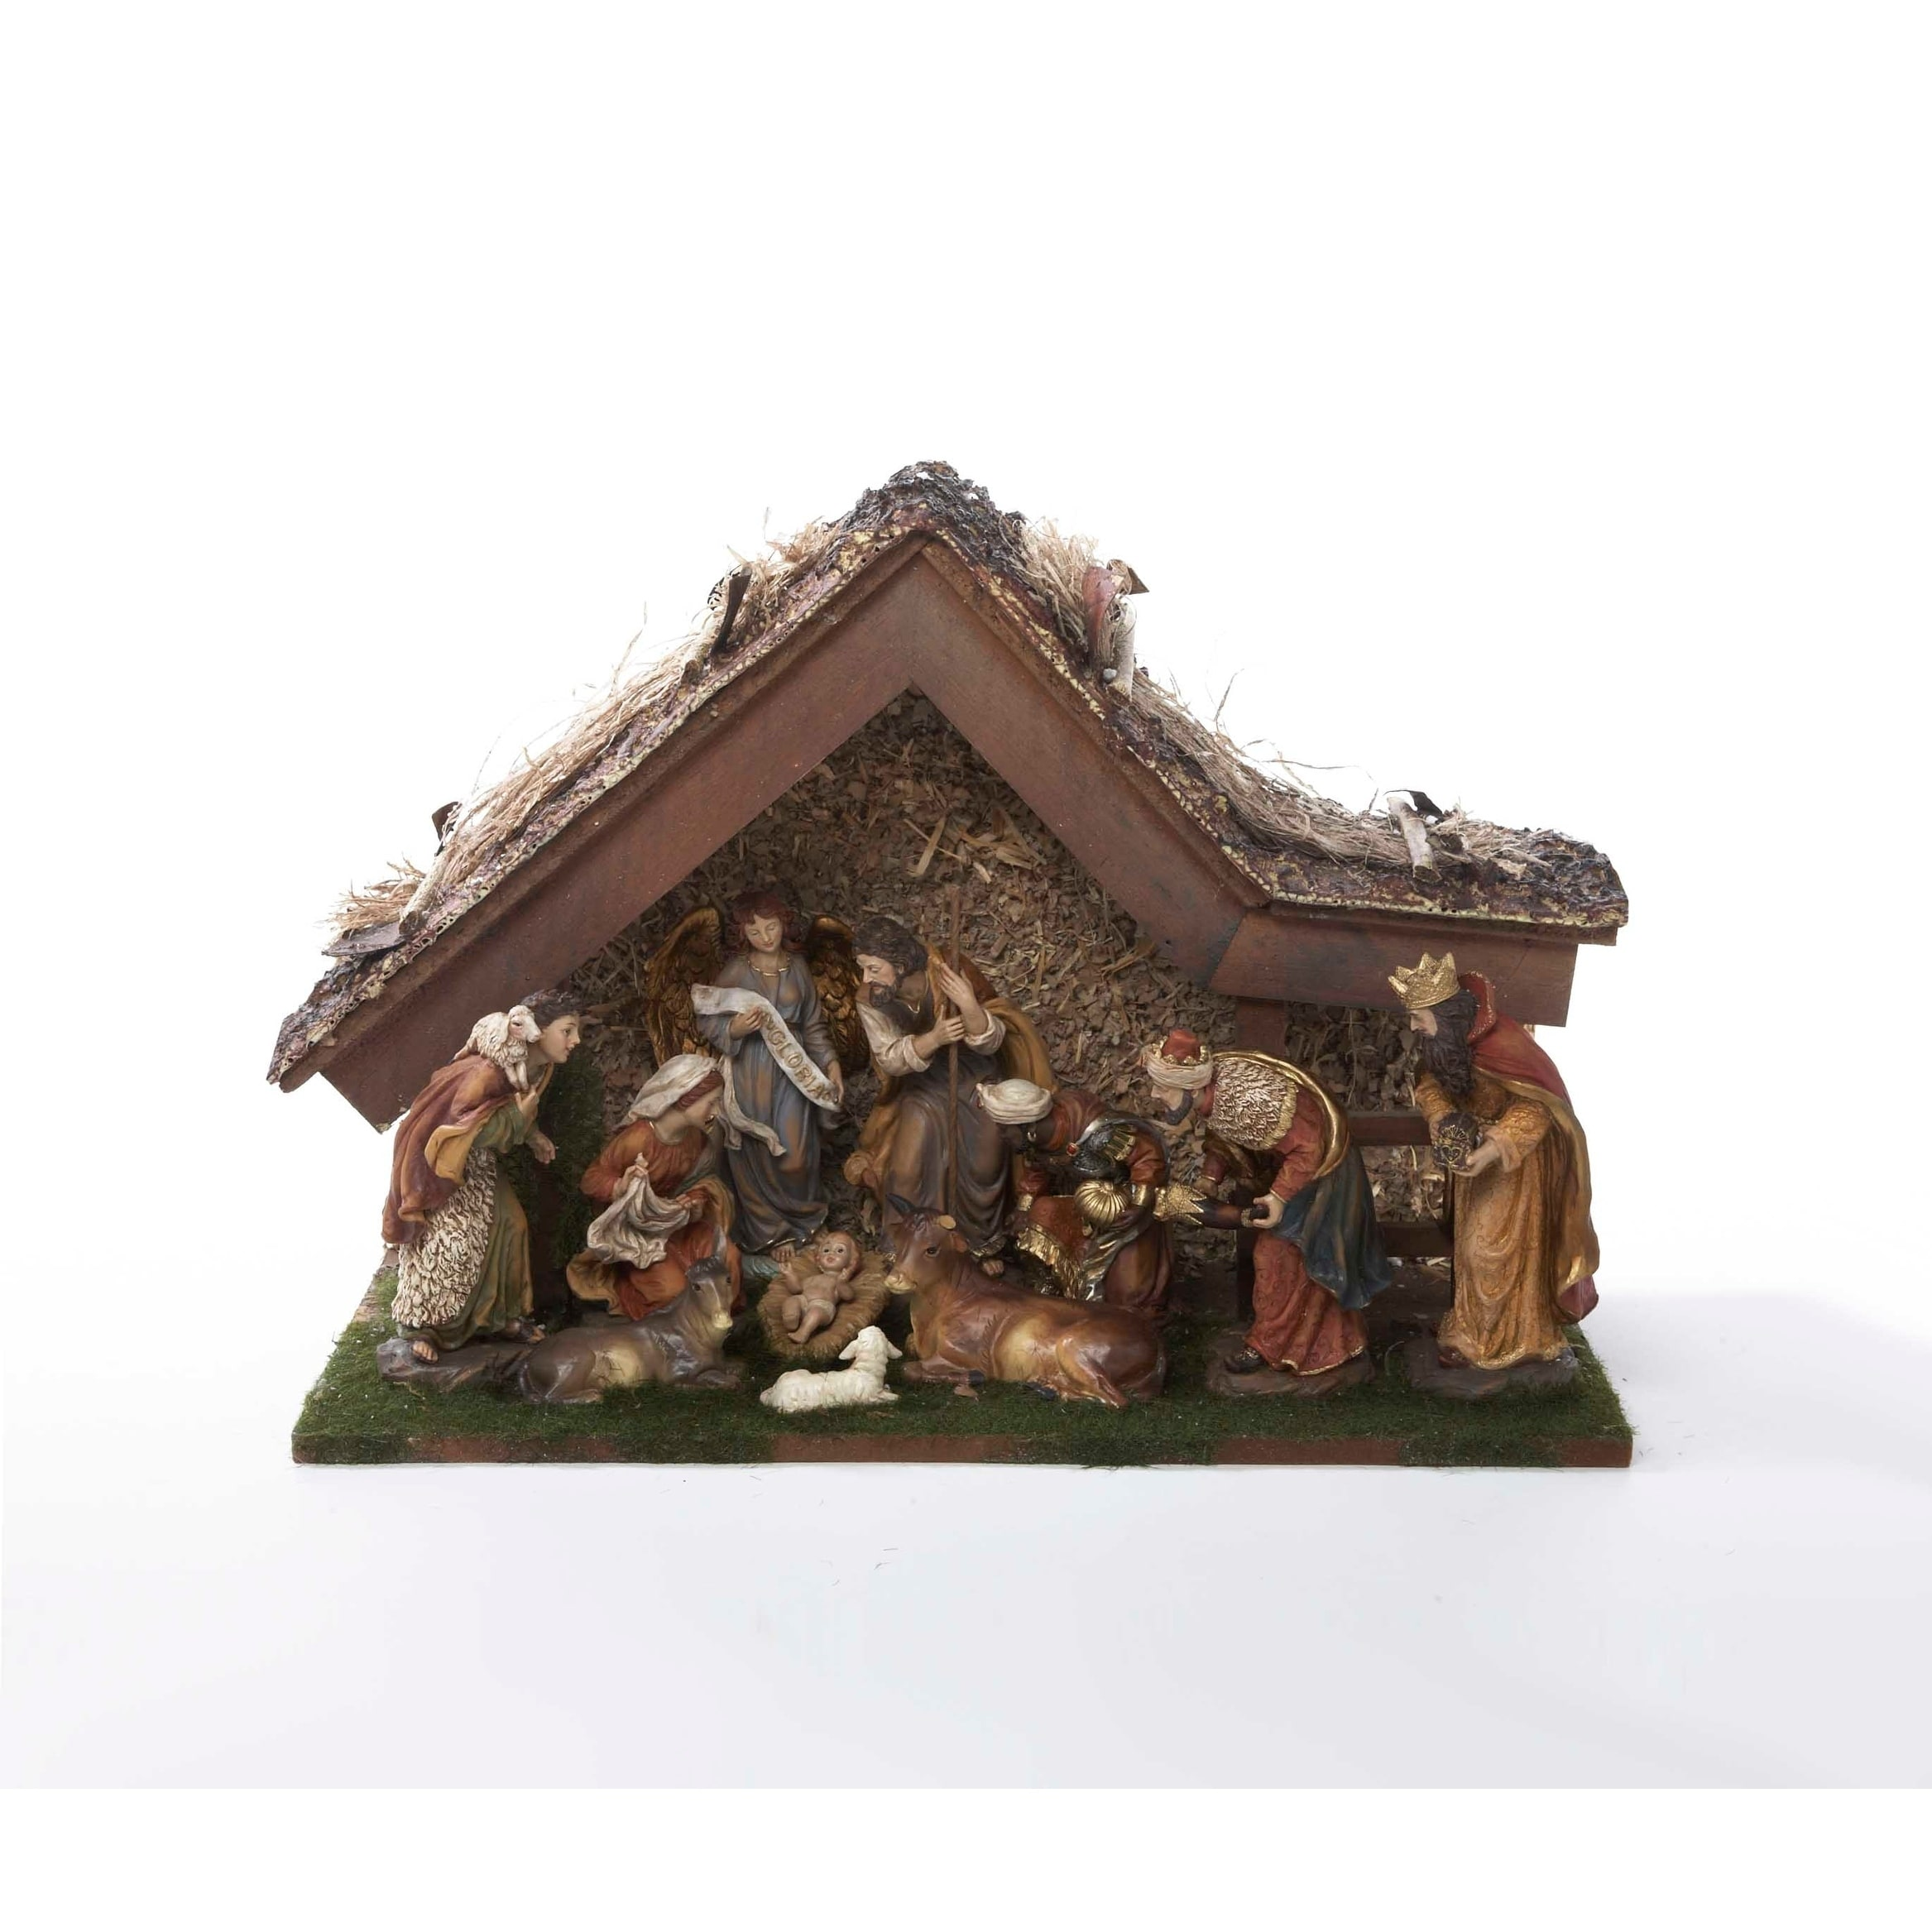 Kurt S. Adler 12-inch Nativity Set with Stable and 10 Fig...